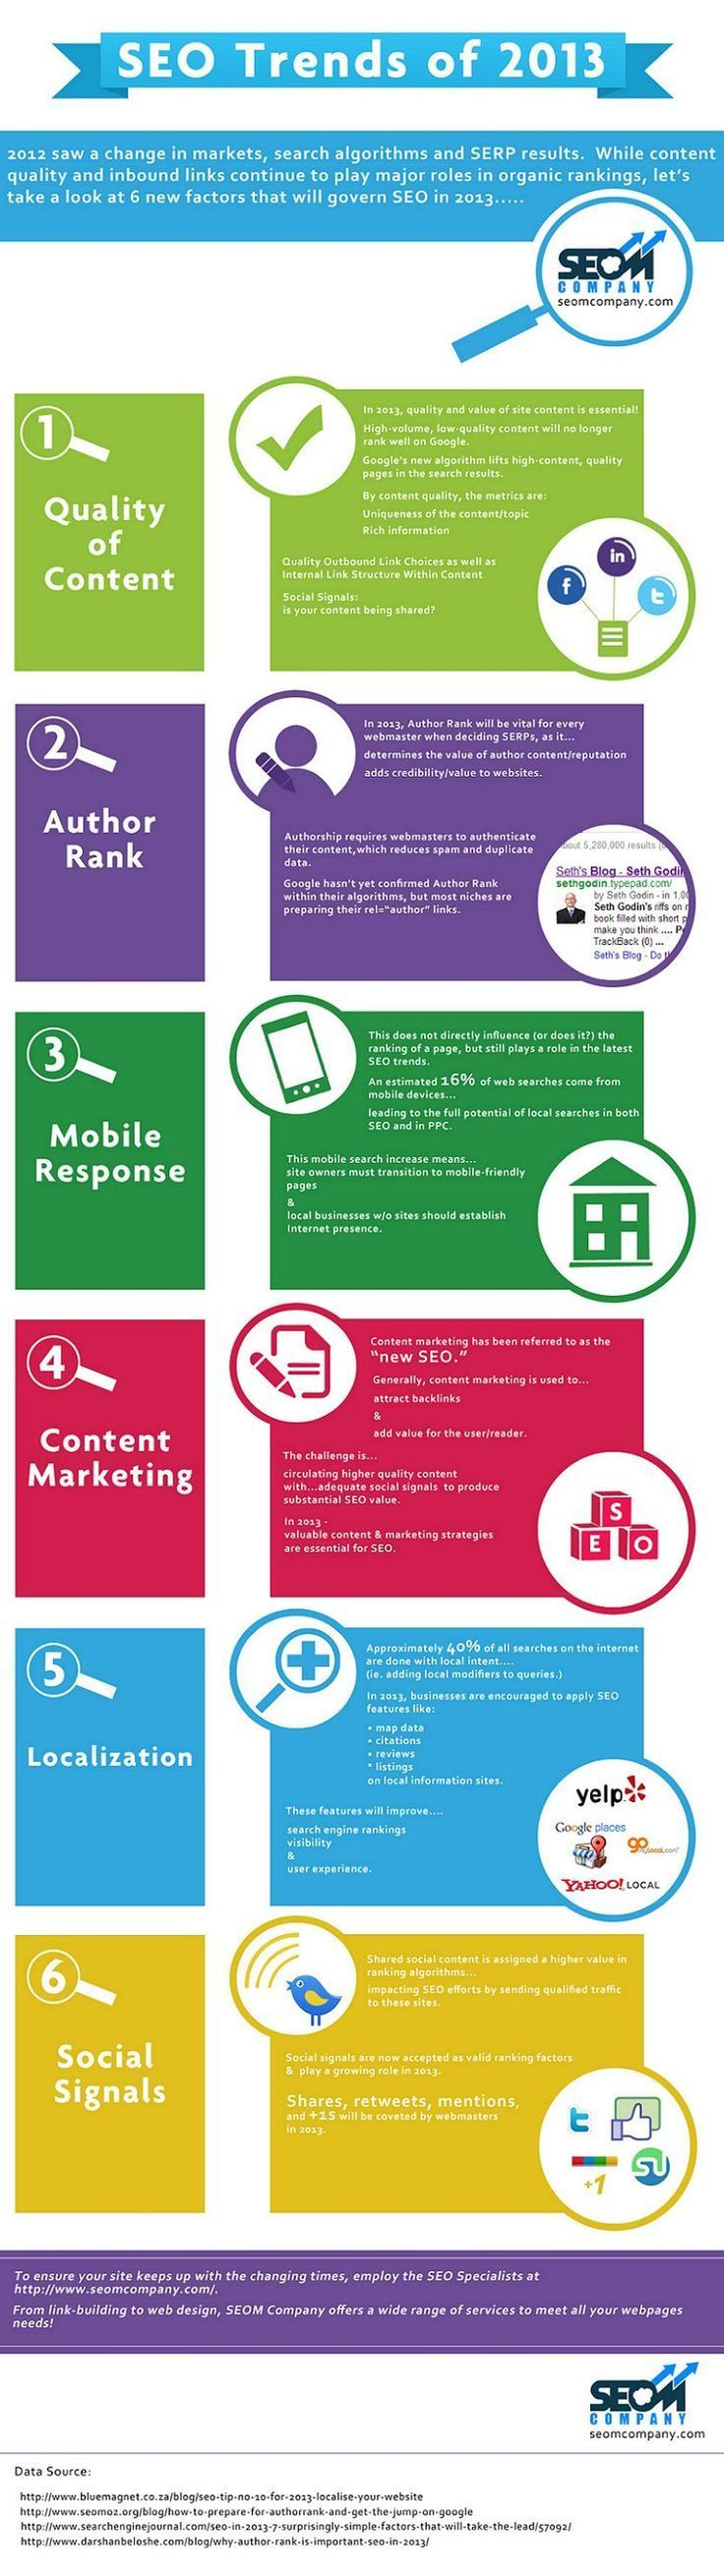 #SEO Trends of 2013 #Infographic